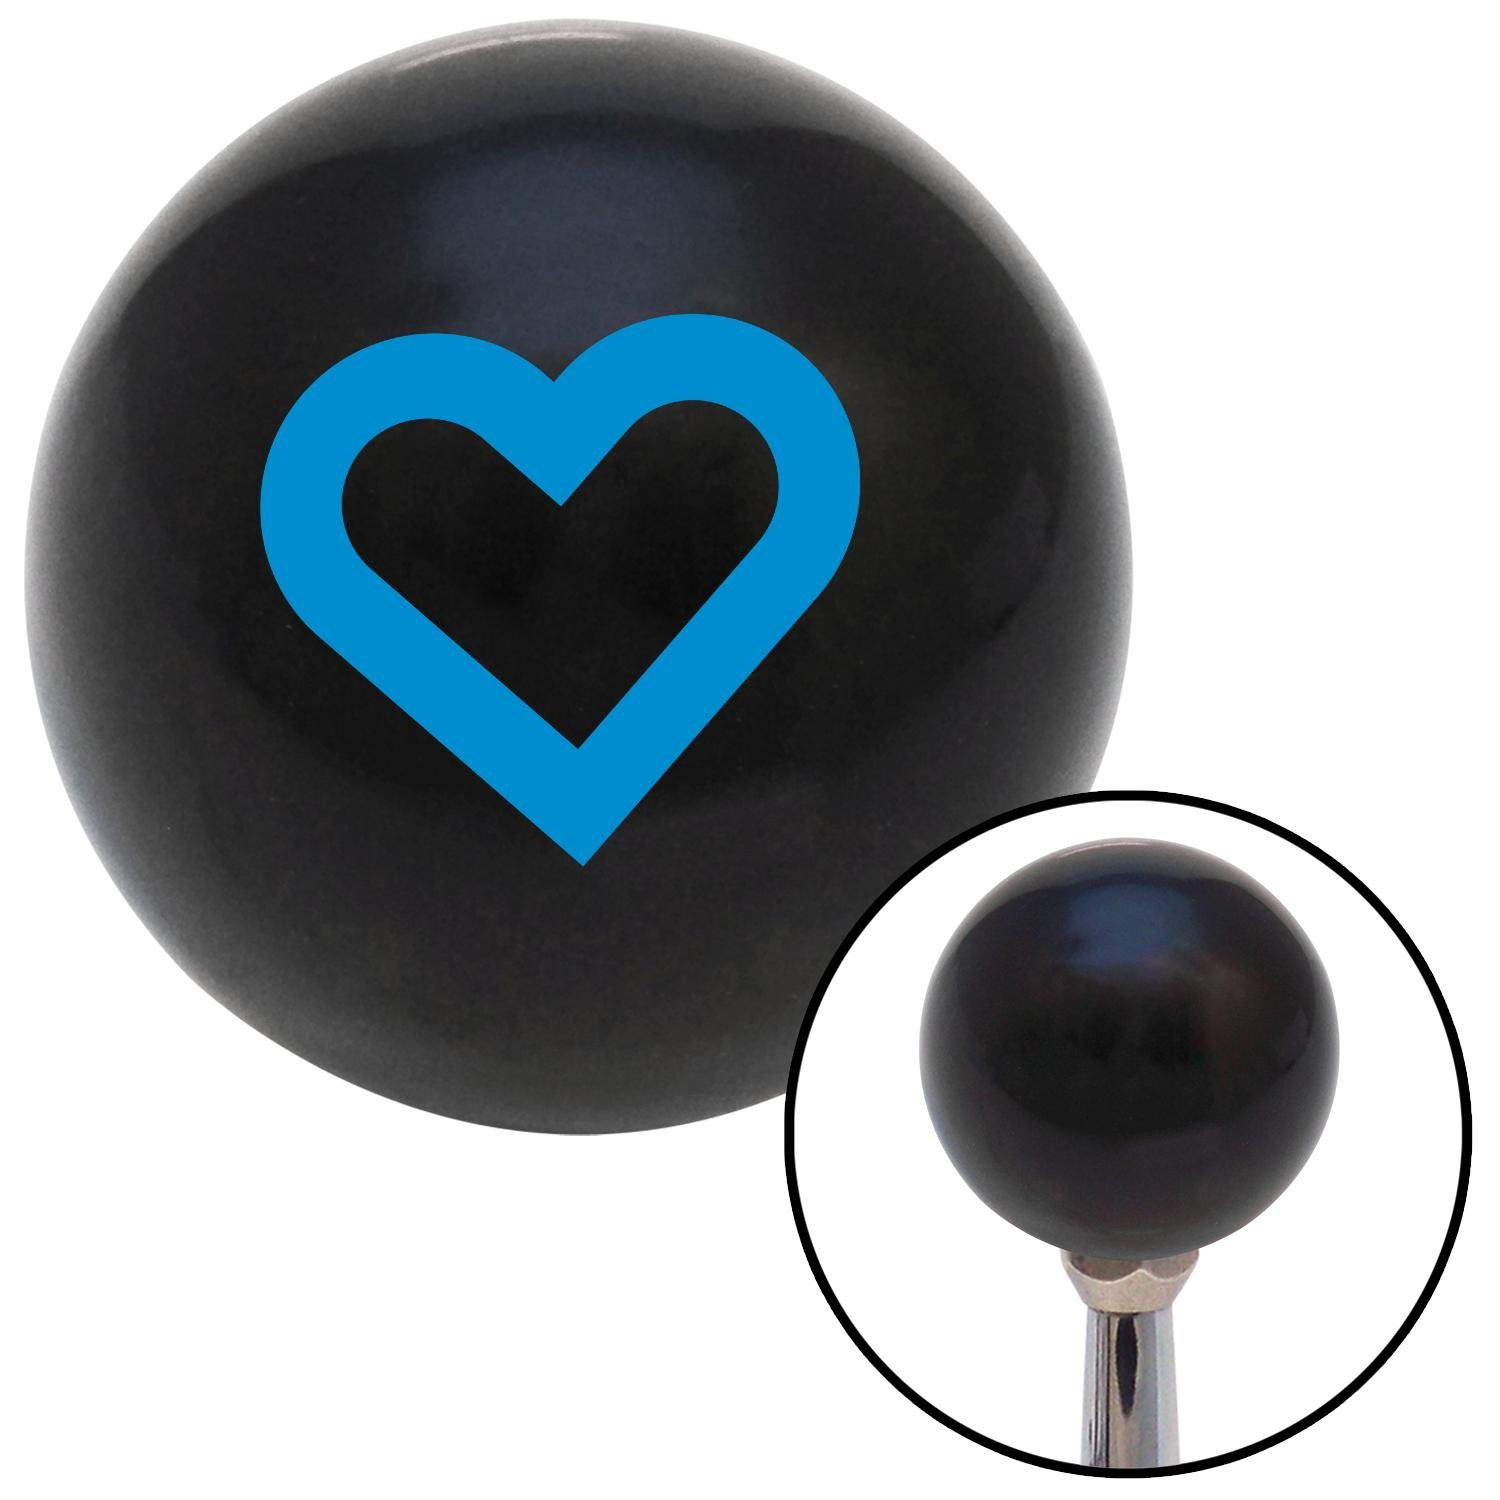 Blue Fat Outlined Heart American Shifter 105329 Black Shift Knob with M16 x 1.5 Insert